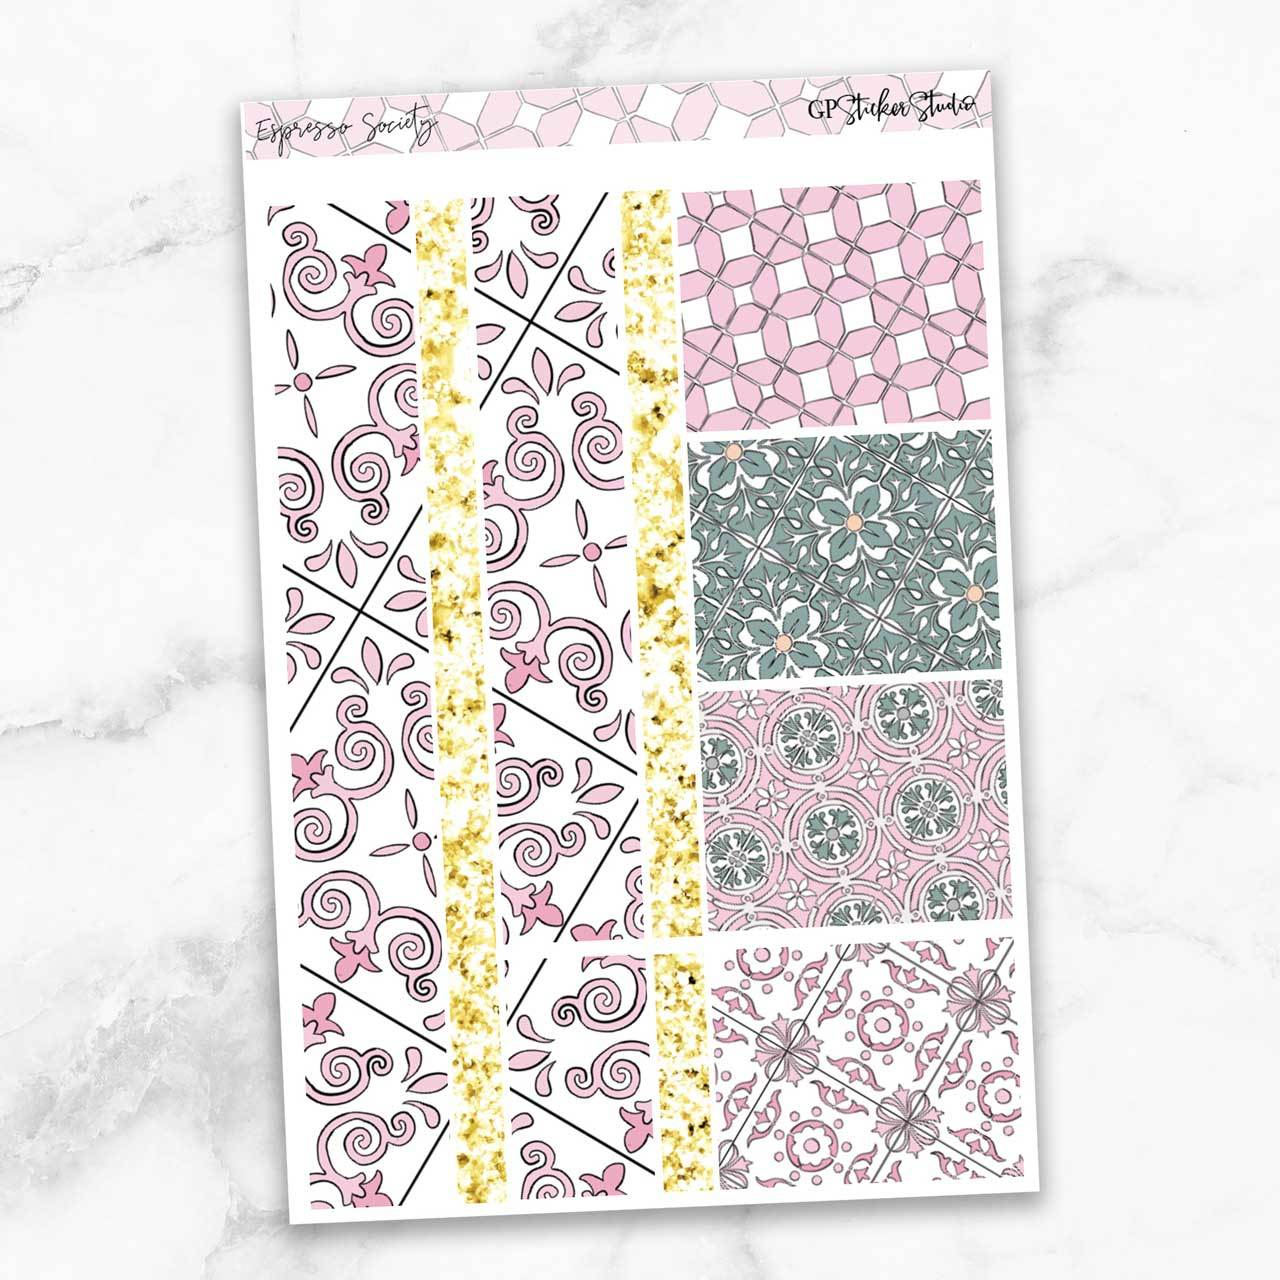 ESPRESSO SOCIETY Washi Sheet Stickers-The GP Studio